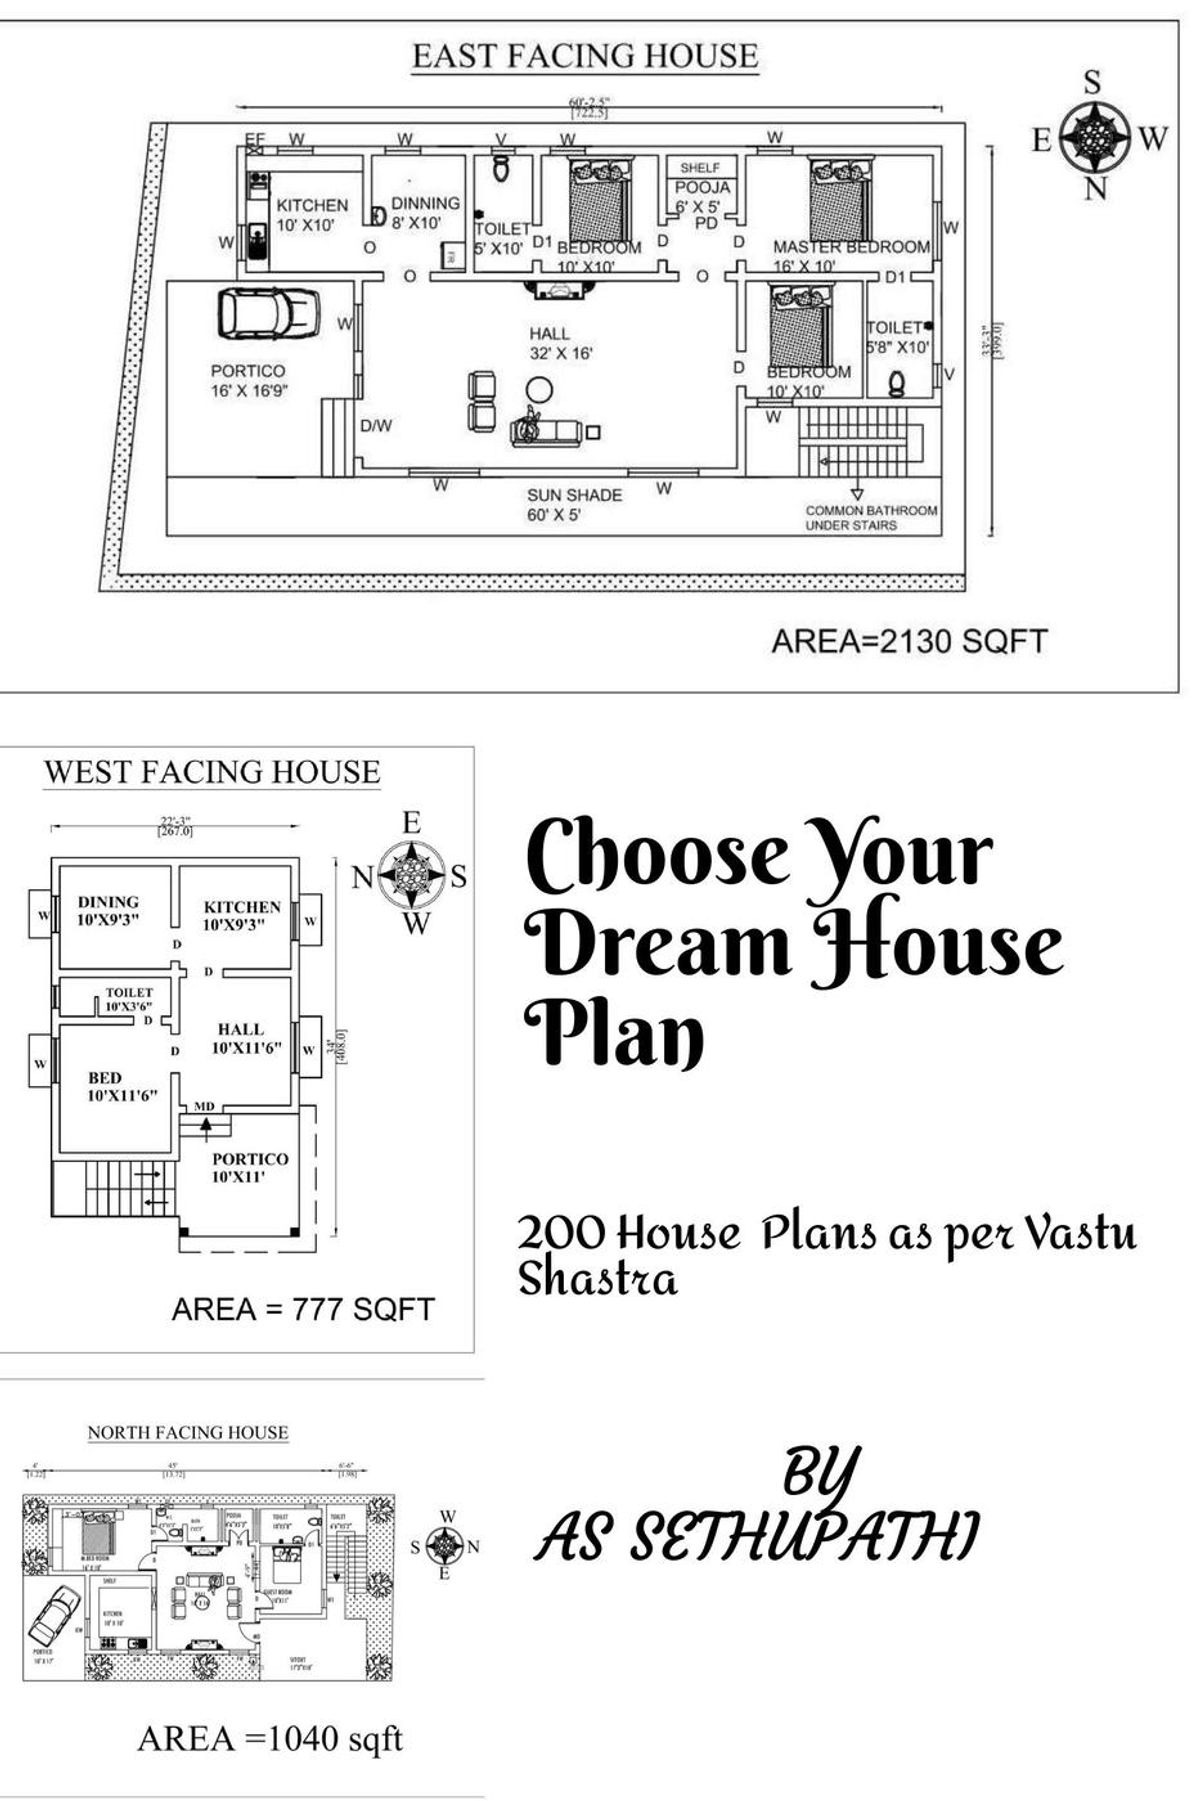 choose your dream house plan 200 house plans as per vastu shastra